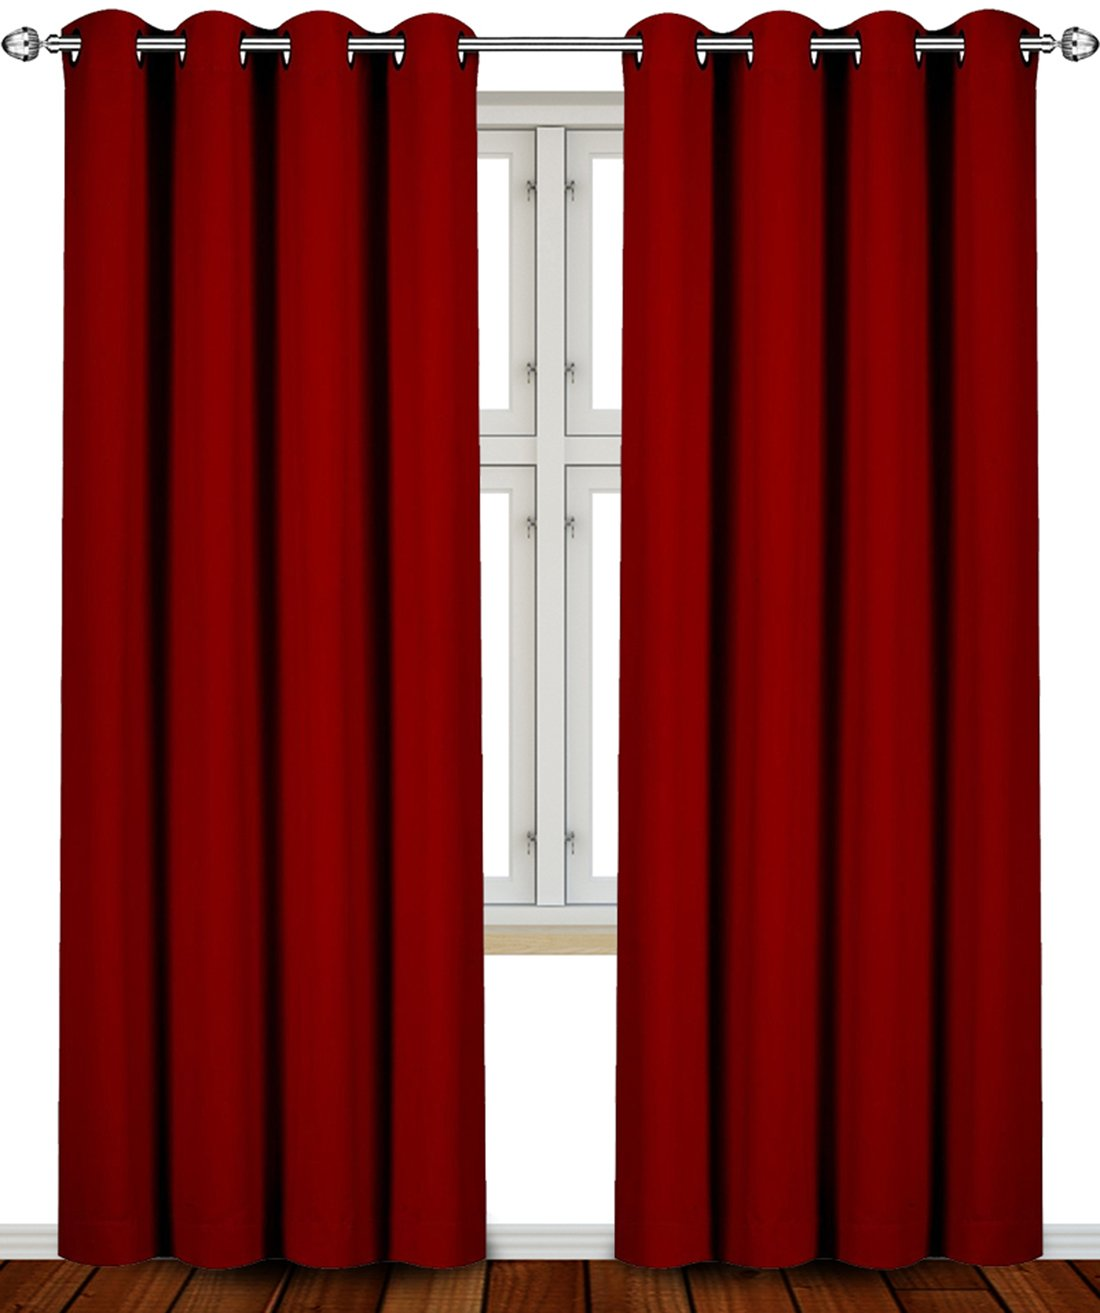 Blackout, Room Darkening Curtains Window Panel Drapes Burgundy Color